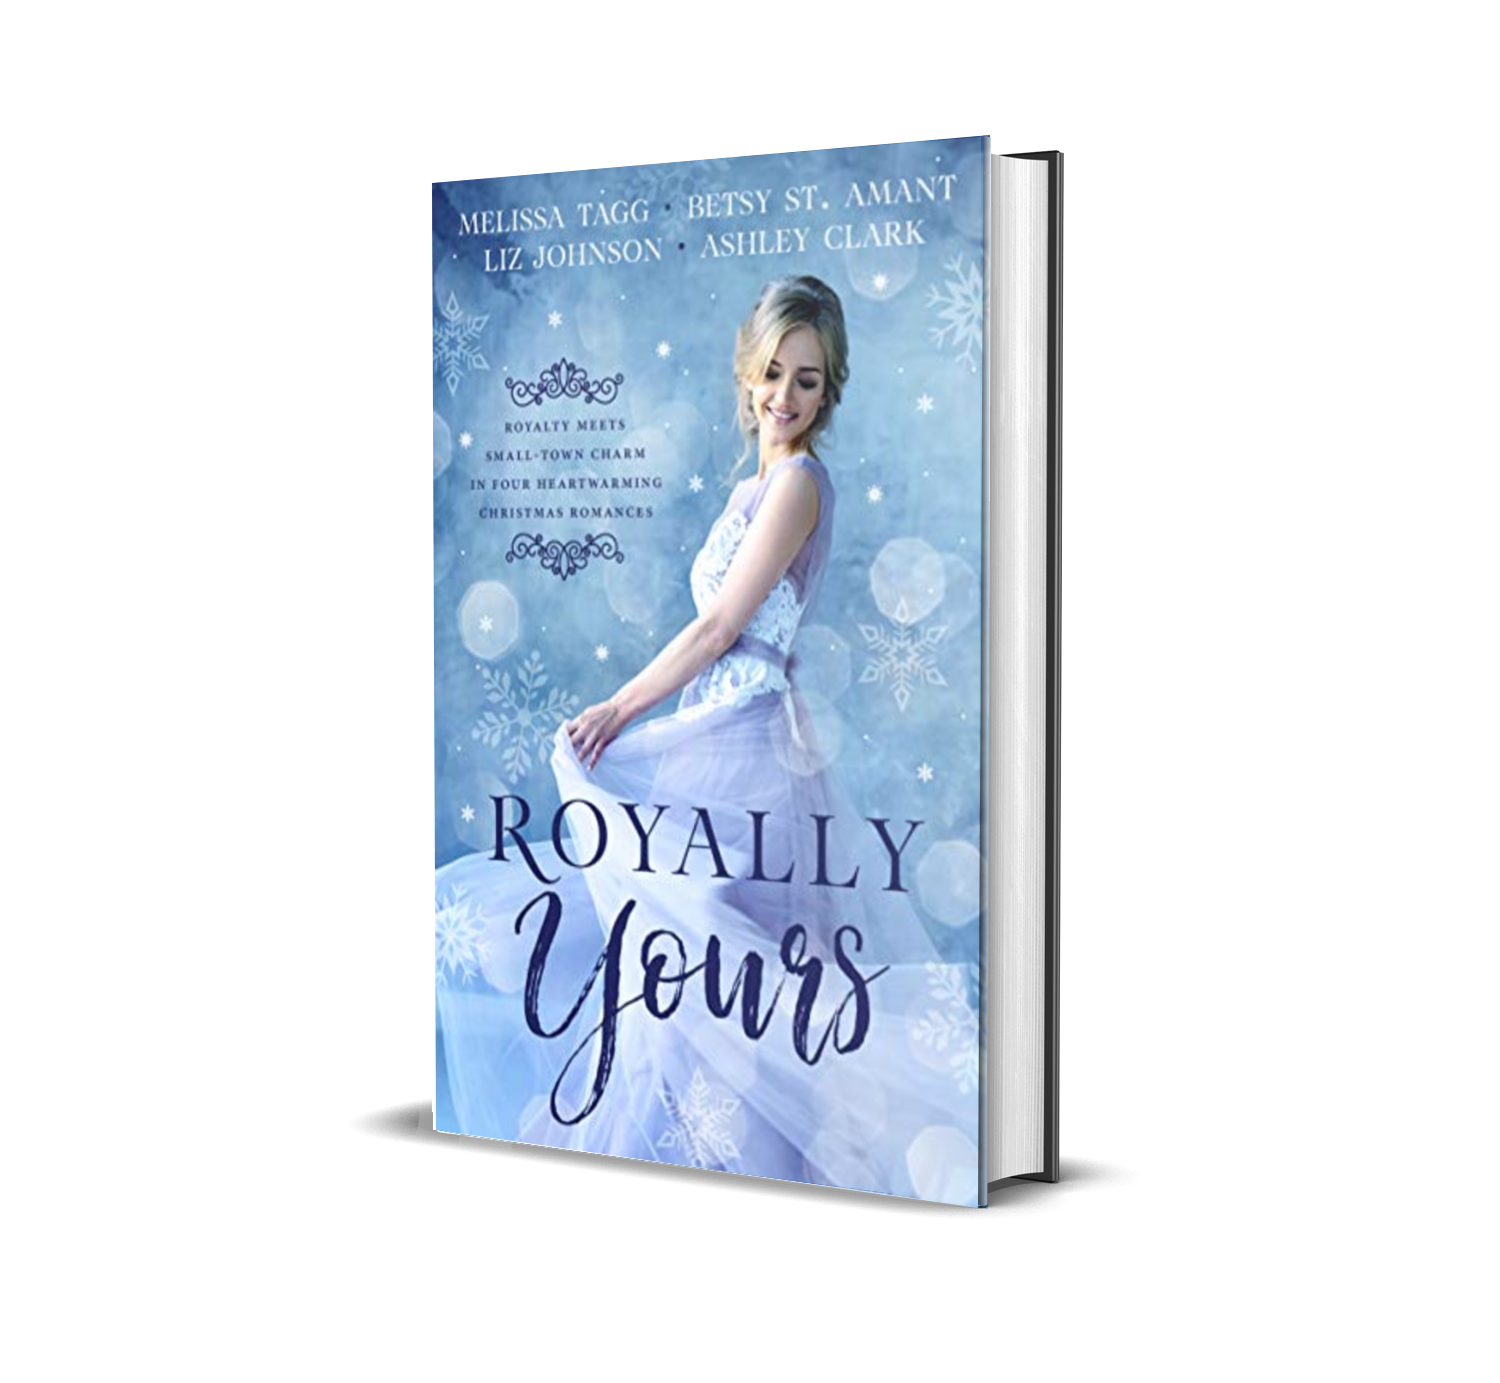 Royally Yours by Melissa Tagg, Betsy St. Amant, Liz Johnson, Ashley Clark